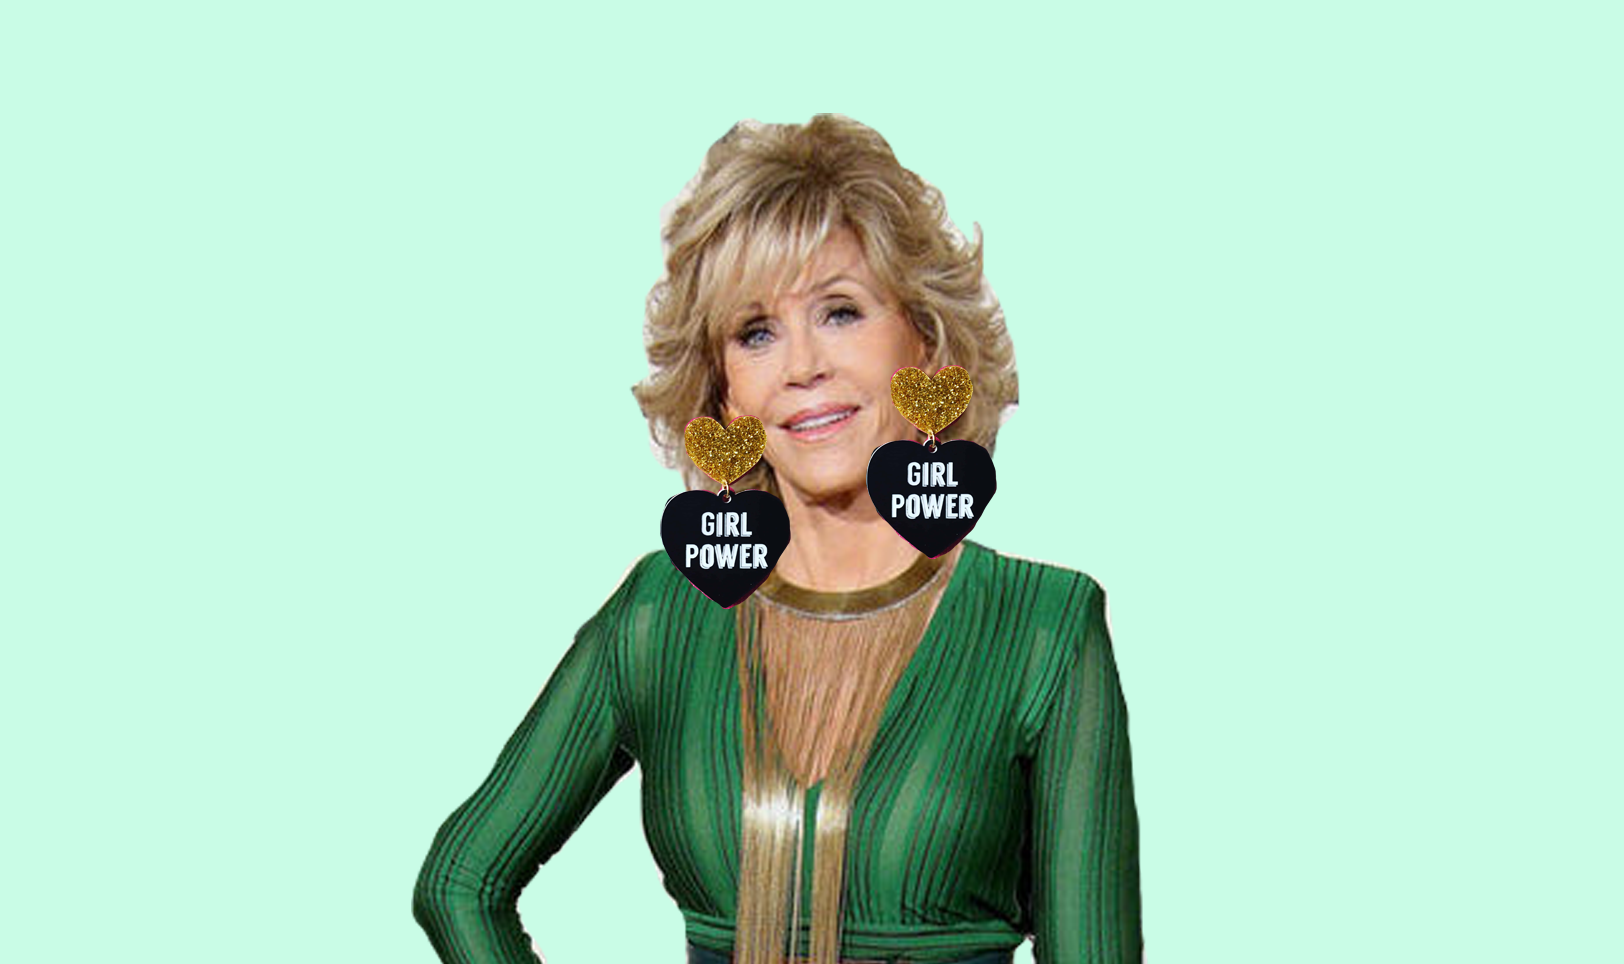 international womens day - Our Pick for International Women's Day? Jane Fonda.